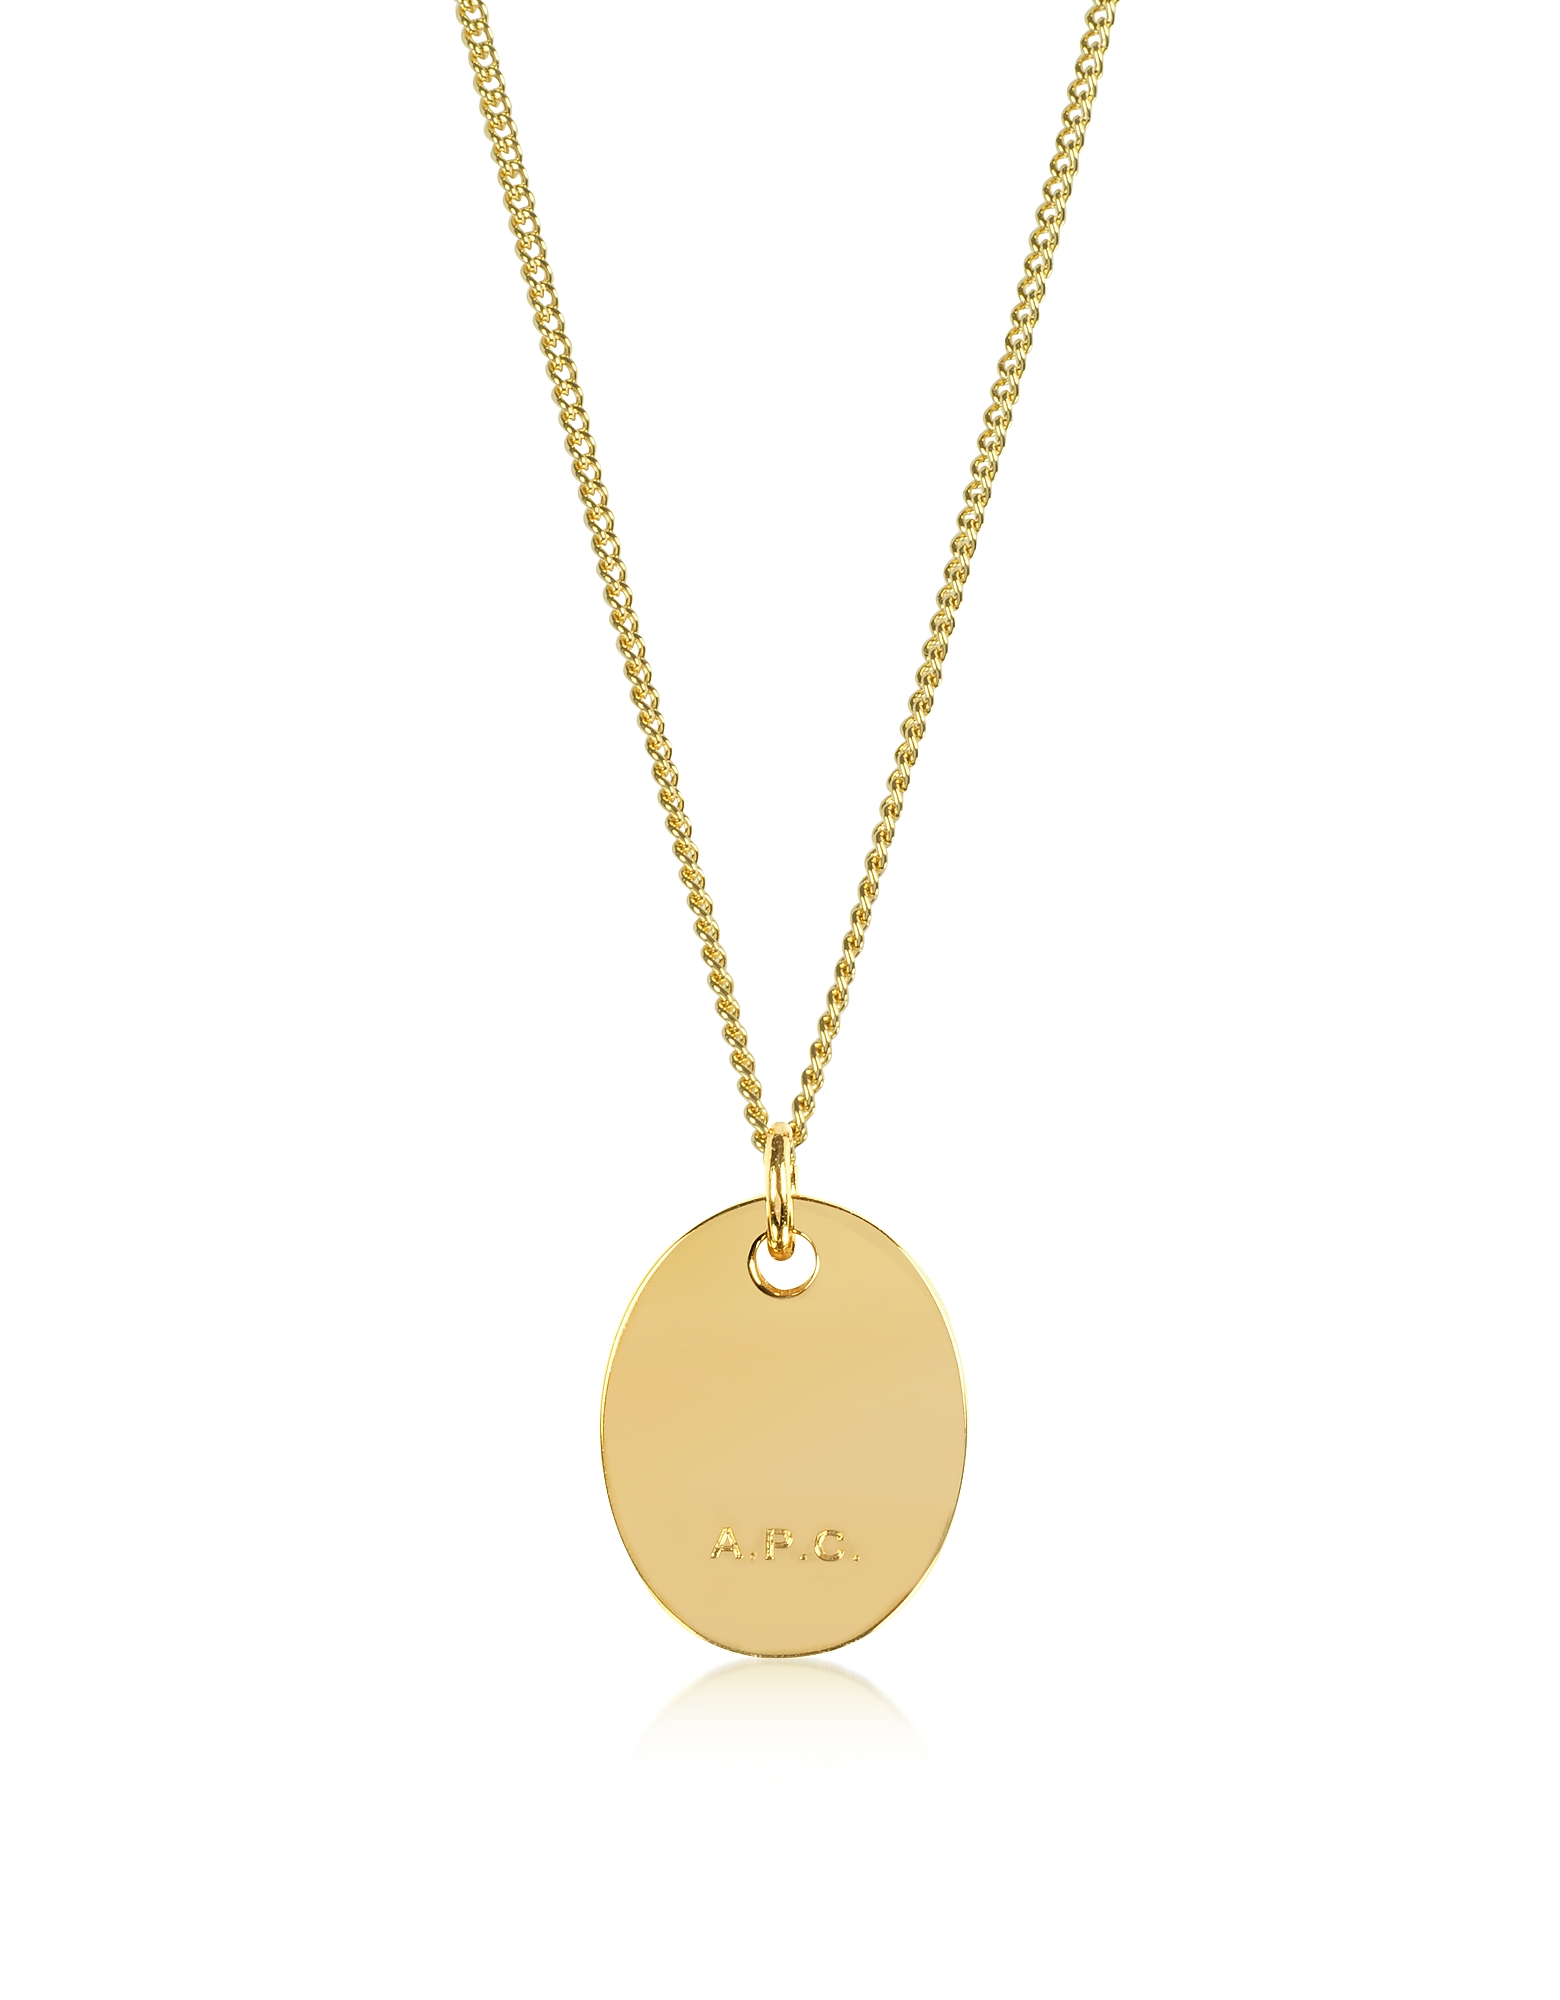 A.P.C. Necklaces, Hannaelle Oval Pendant Necklace